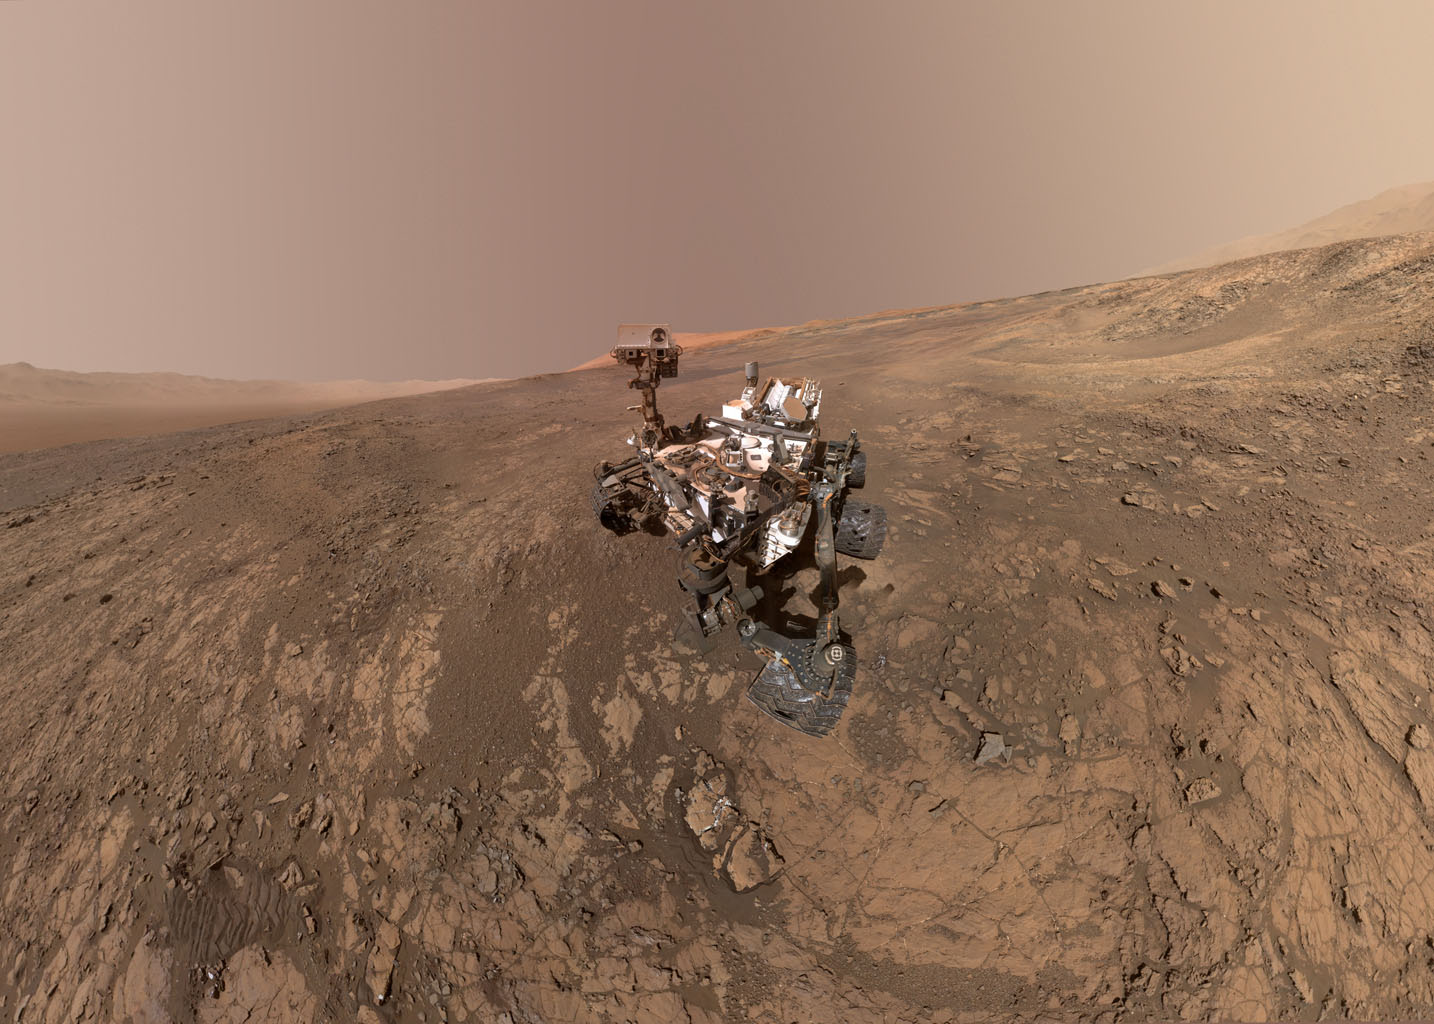 Panoramic images show Curiosity's route on Mars since 2012 landing